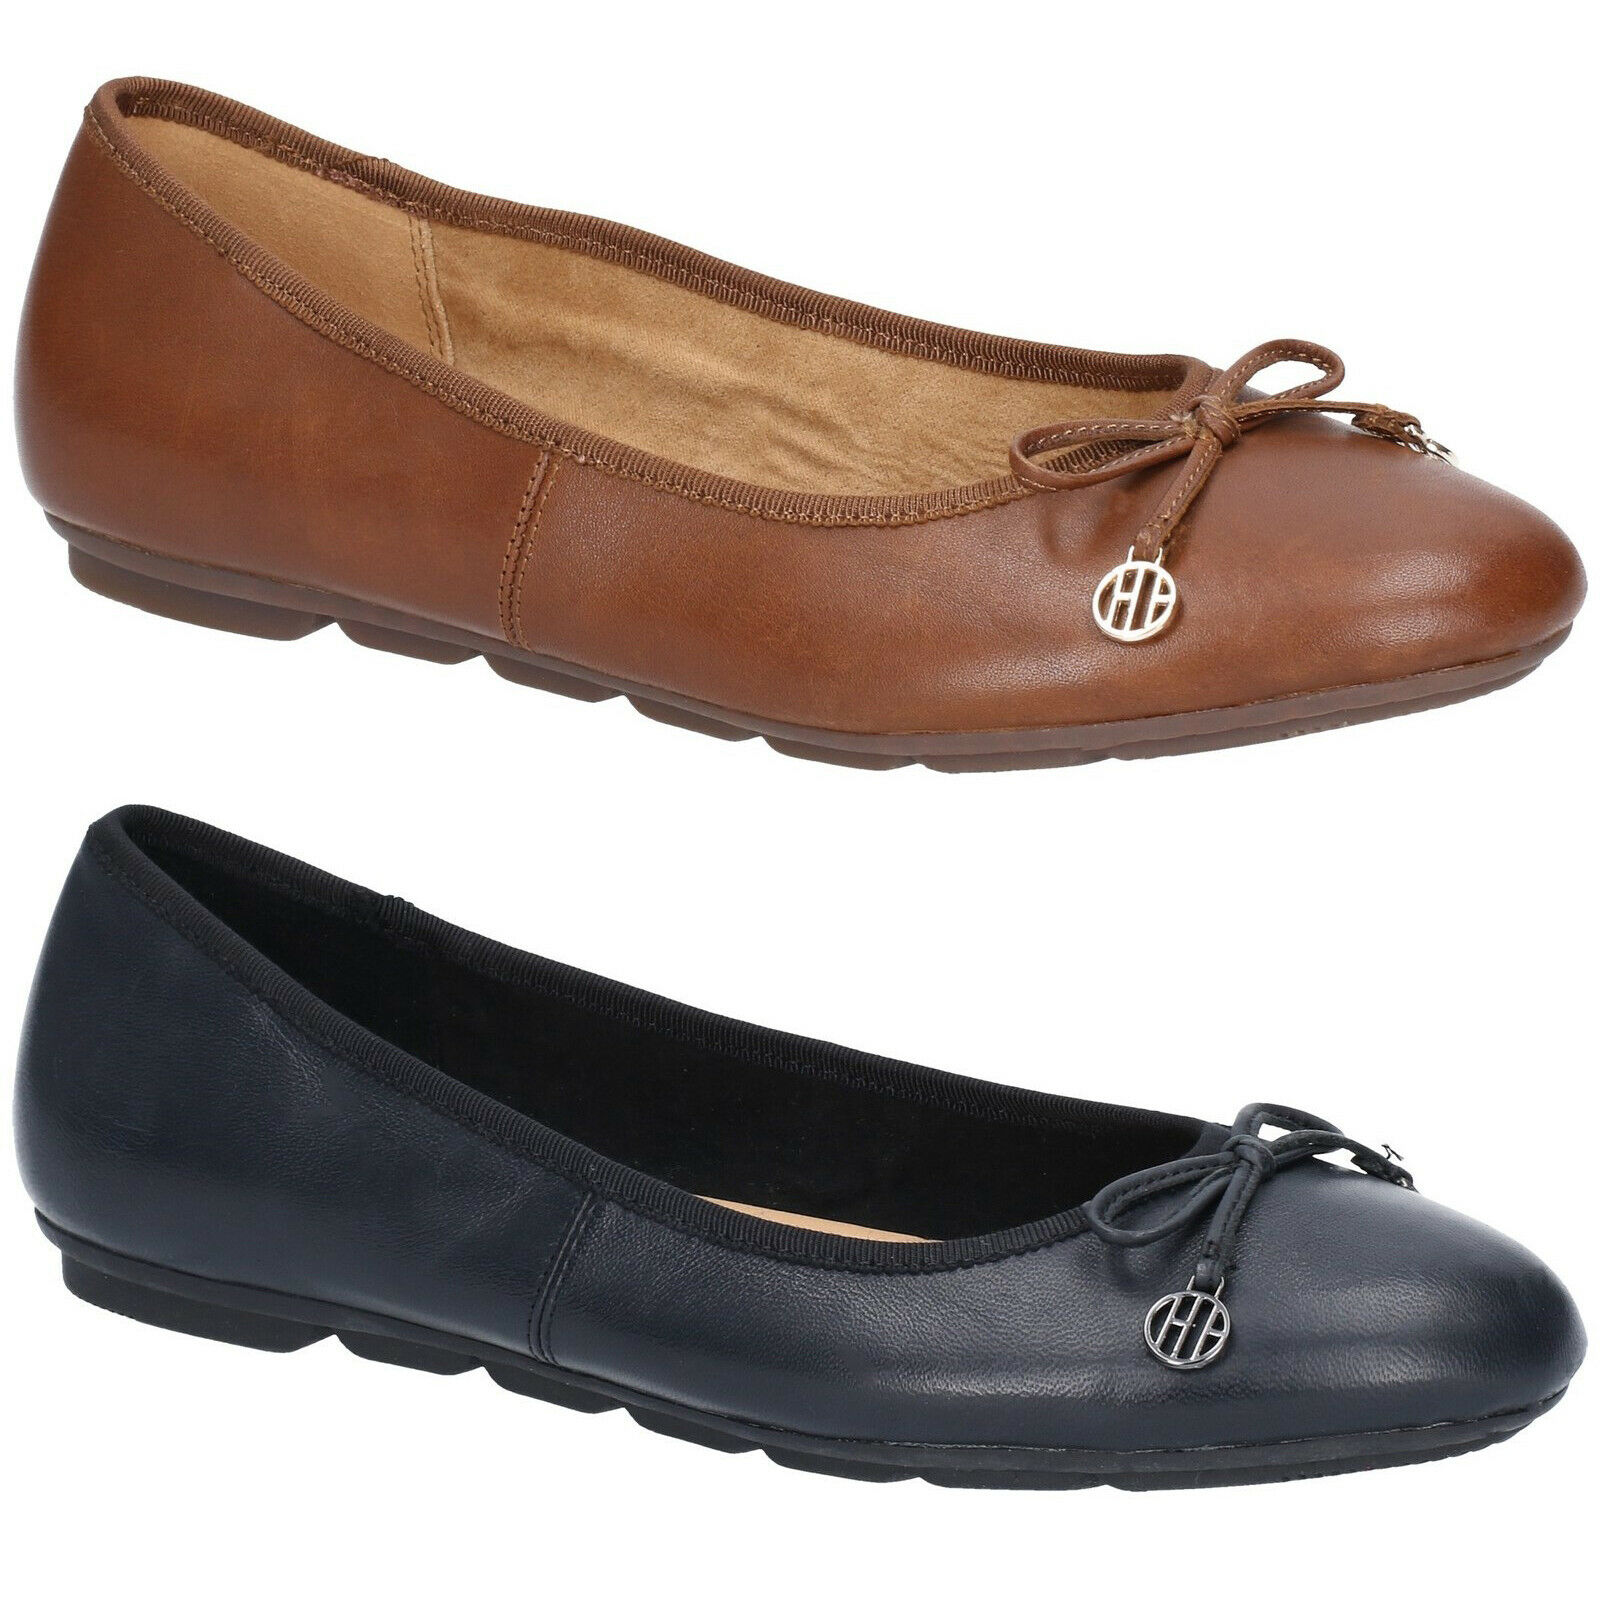 Hush Puppies Abby Bow Ballet Leather